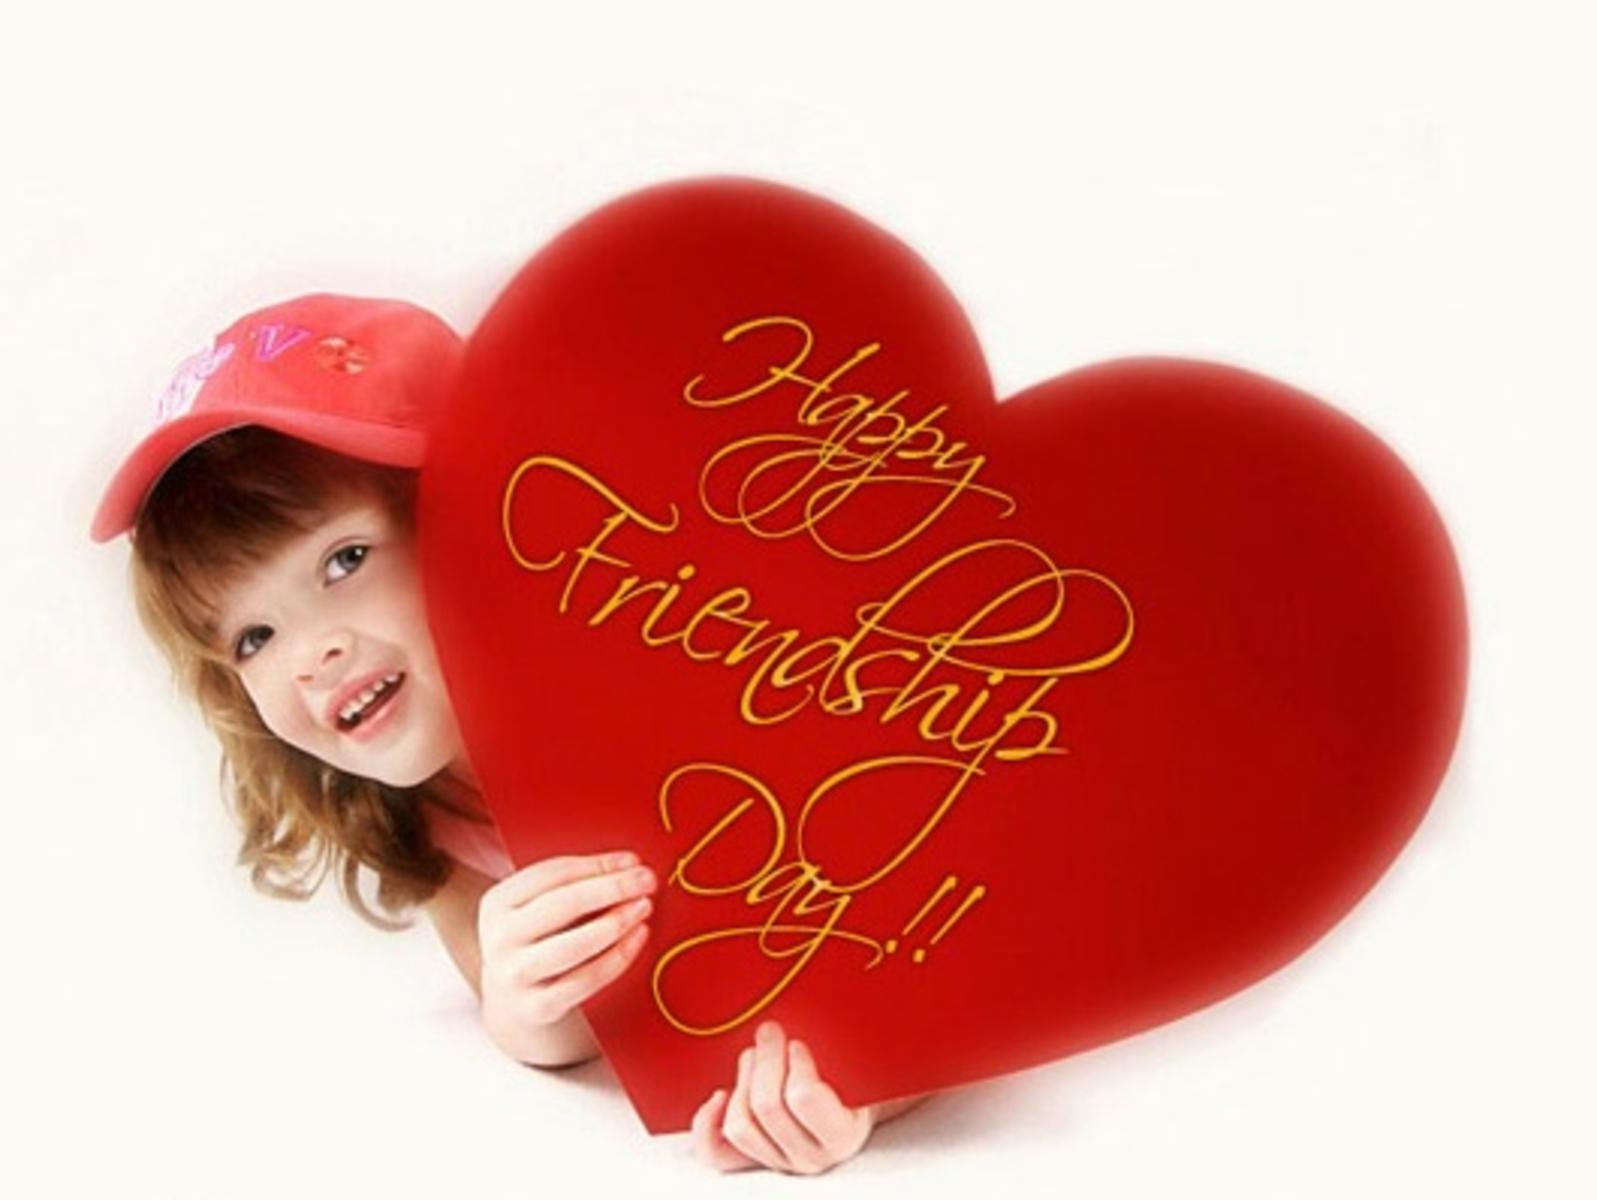 friendship day wallpapers - photo #3